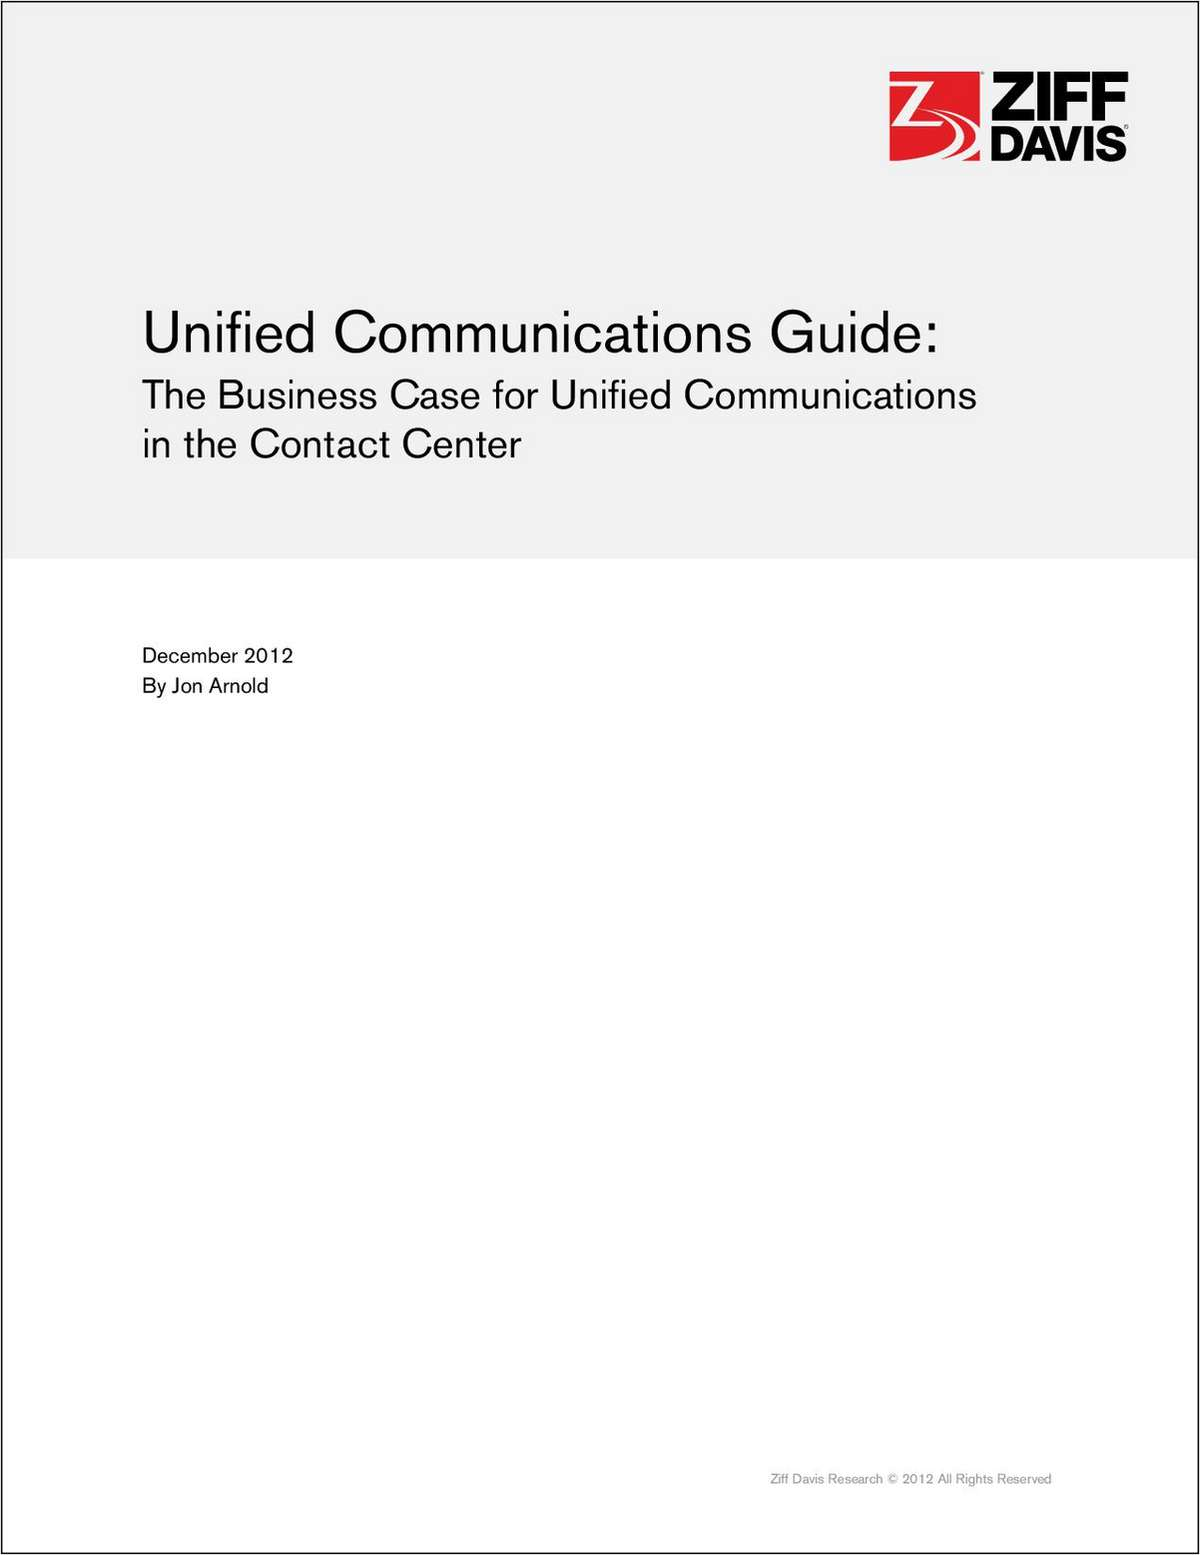 Unified Communications Guide: The Business Case for Unified Communications in the Contact Center